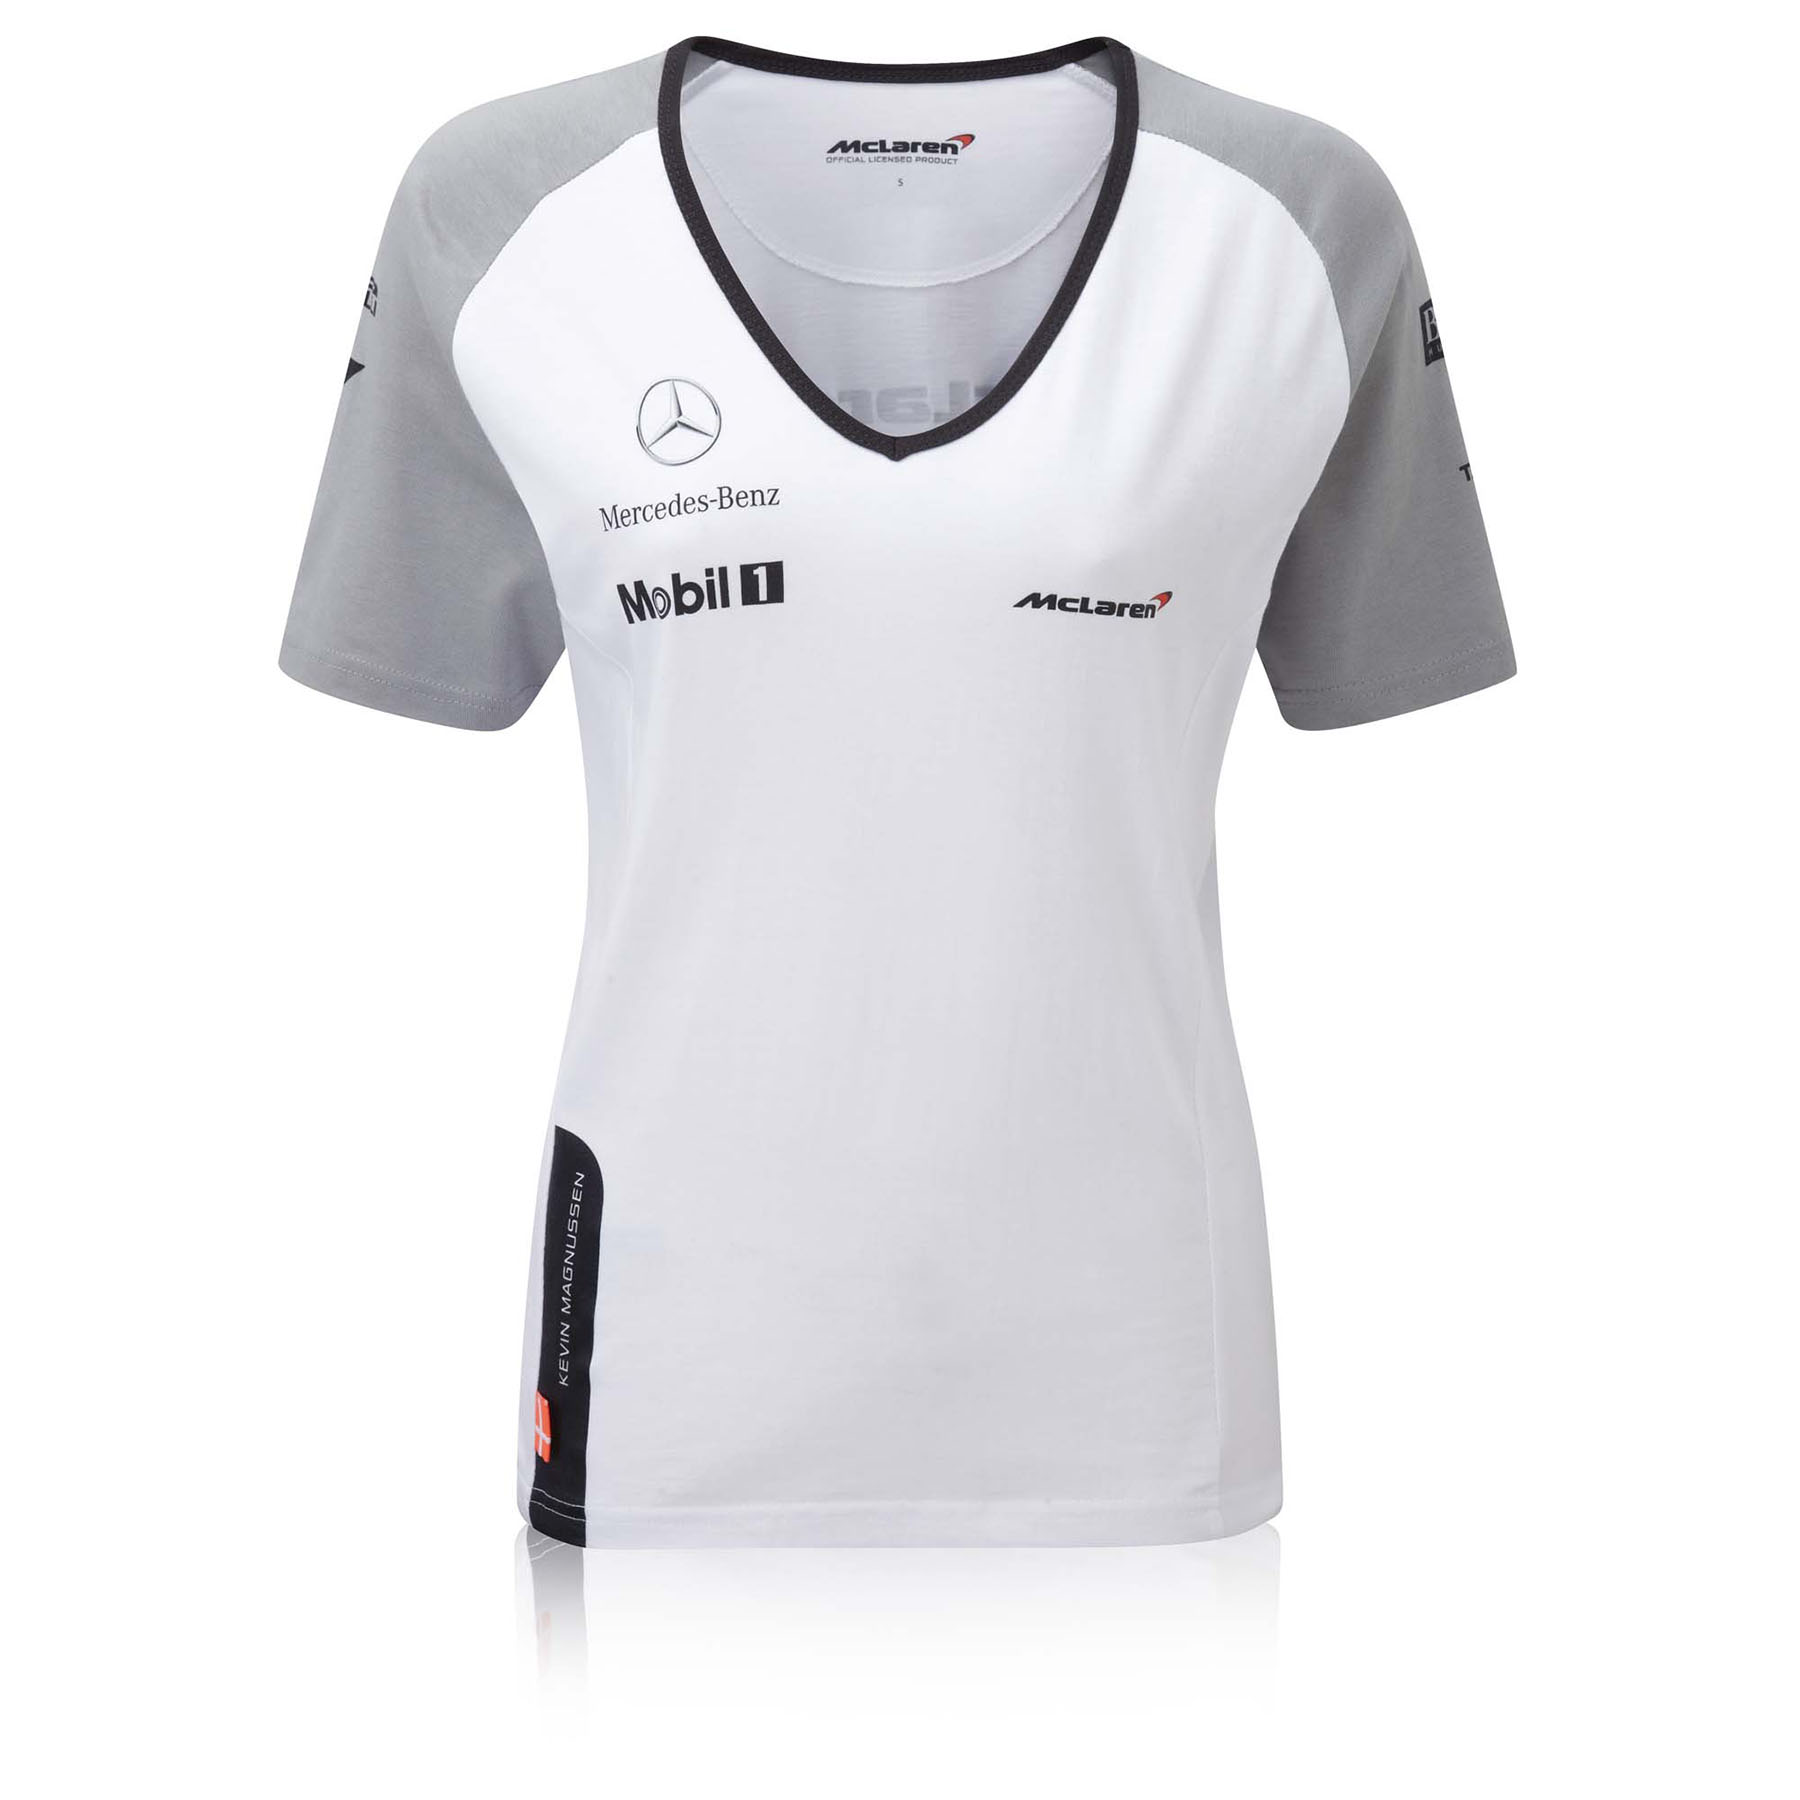 Team McLaren Magnussen Team T-Shirt - Womens